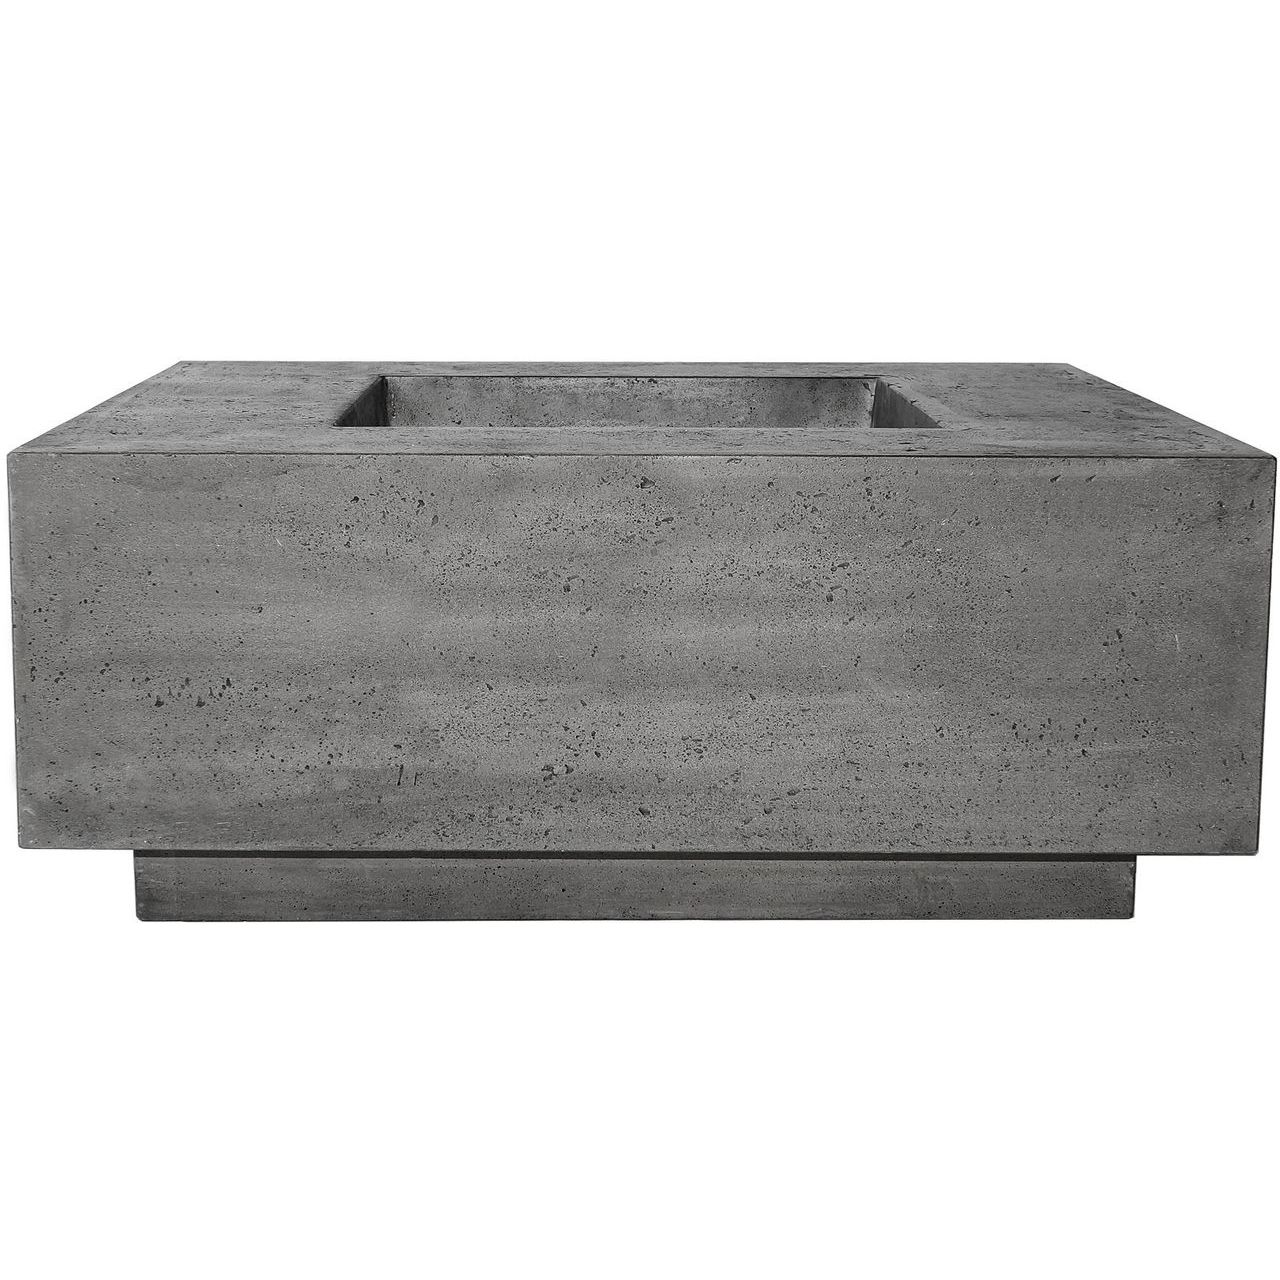 Prism Hardscapes Tavola 42 Fire Table in Pewter - LP